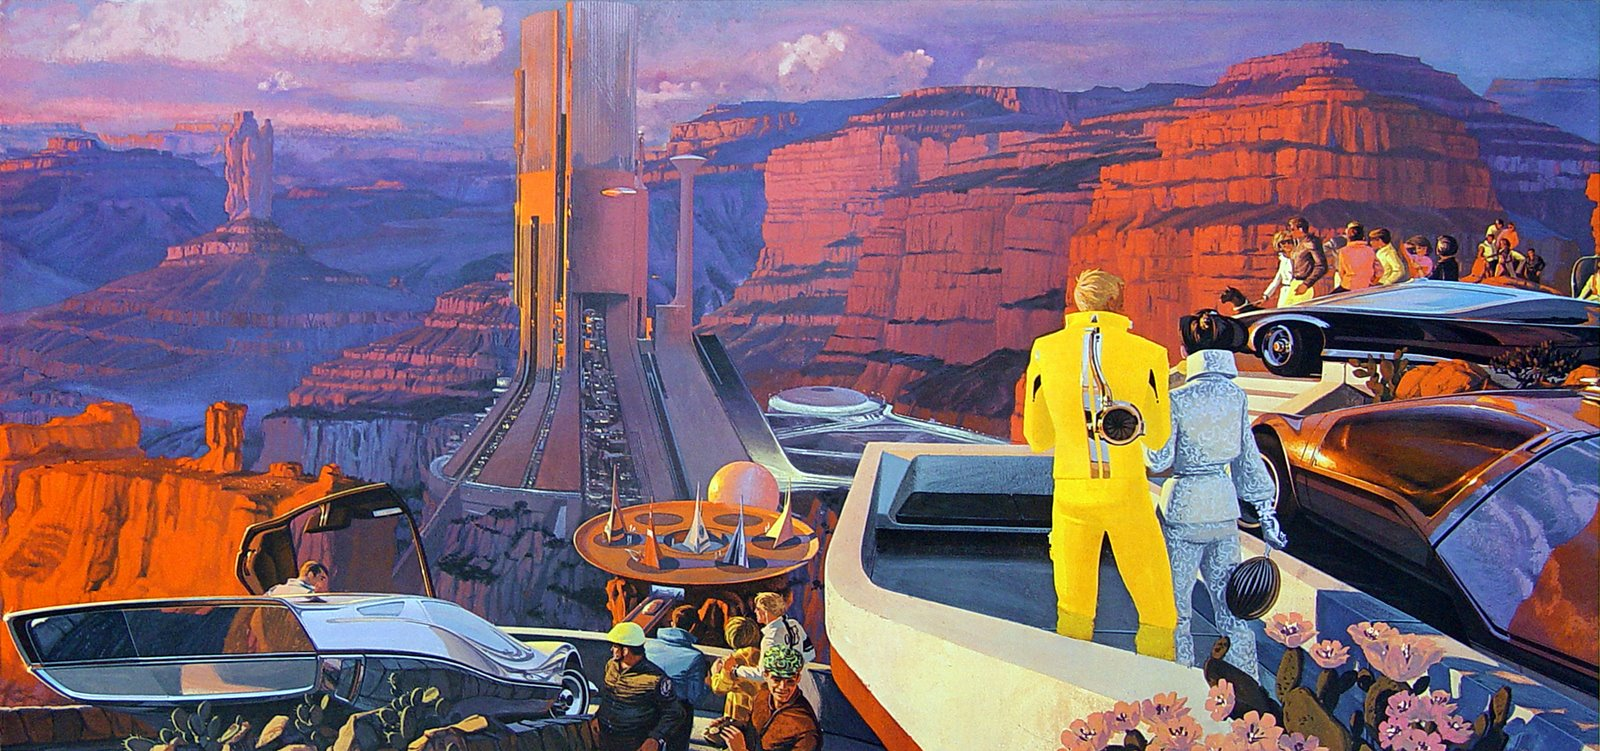 a biography of philip k dick a science fiction and fiction writer of the 1950s and the 1960s A masterwork by philip k dick, this is the final, expanded version of the novella the unteleported man, which dick worked on shortly before his death in lies, inc, fans of the science fiction legend will immediately recognize his hallmark themes of life in a security state, conspiracy, and.